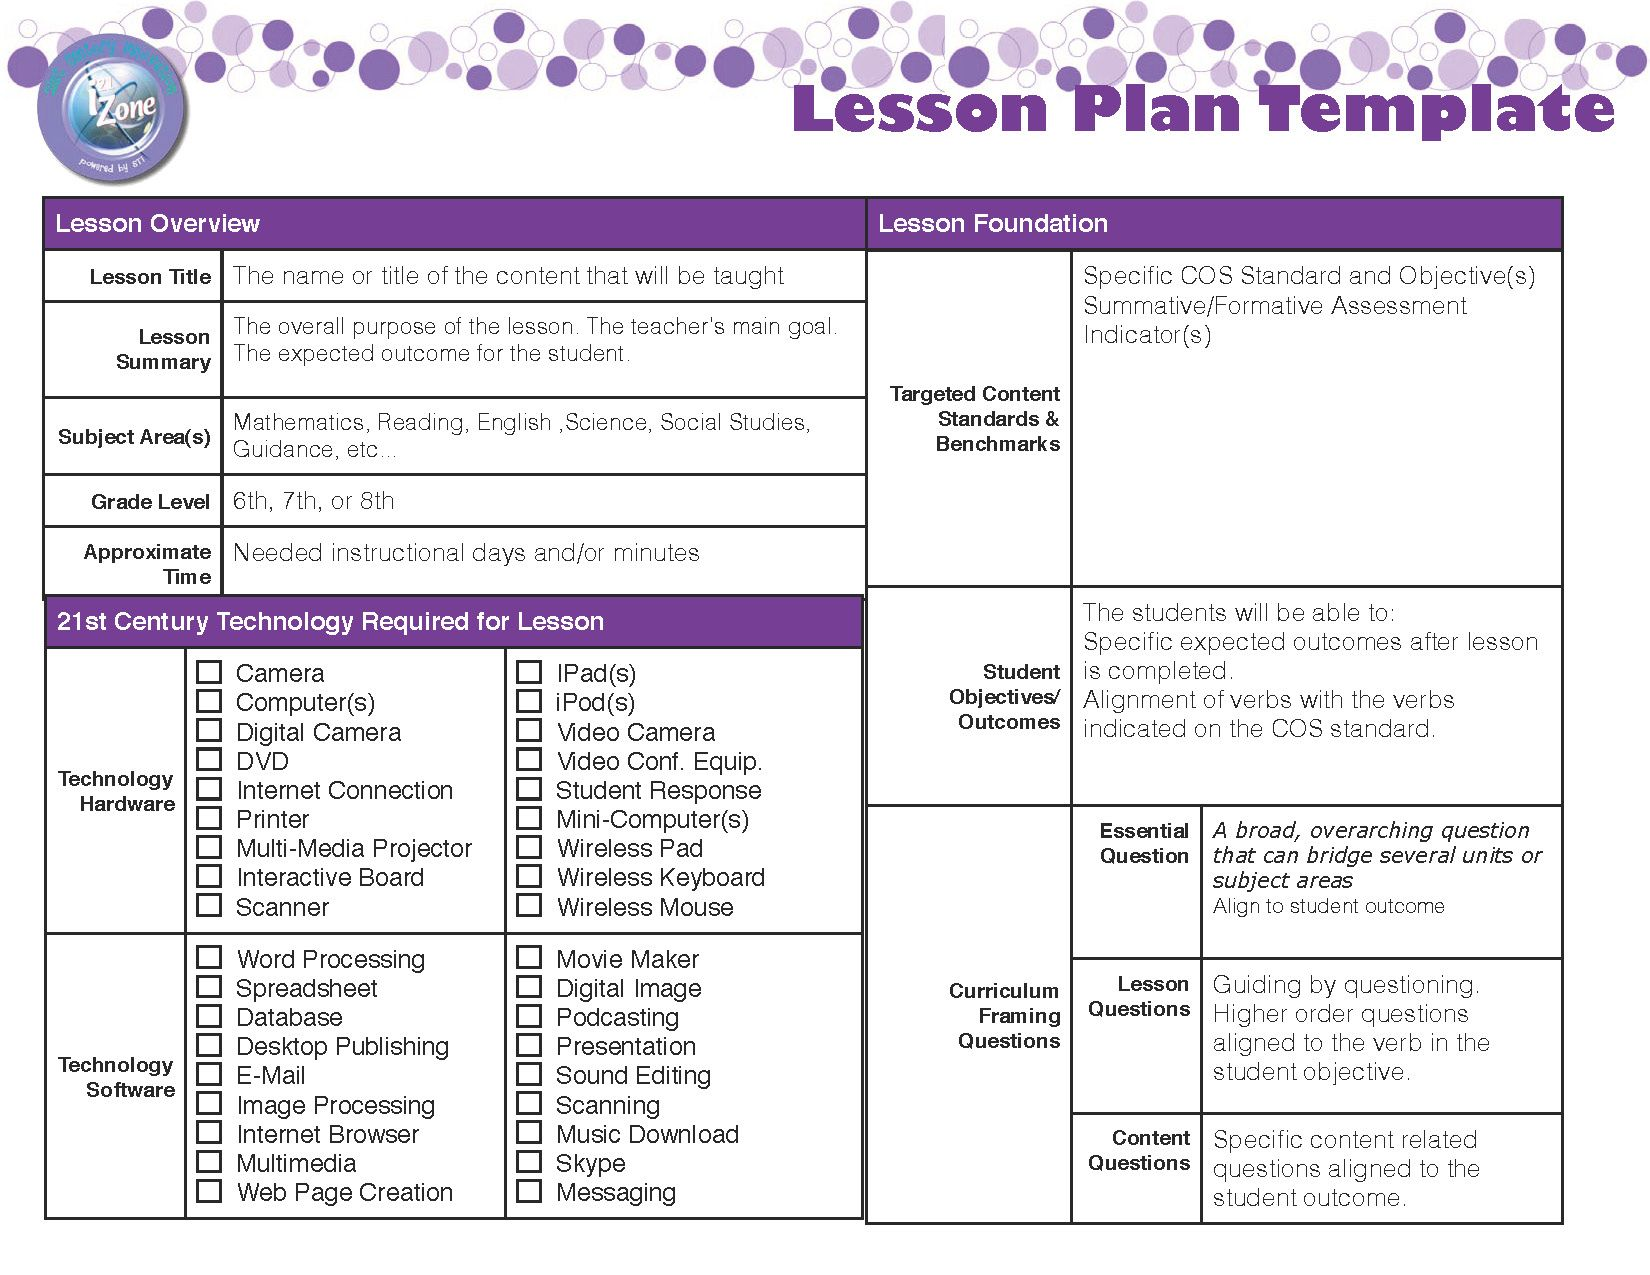 Lesson plan template writings on the whiteboard all for Teachers college lesson plan template